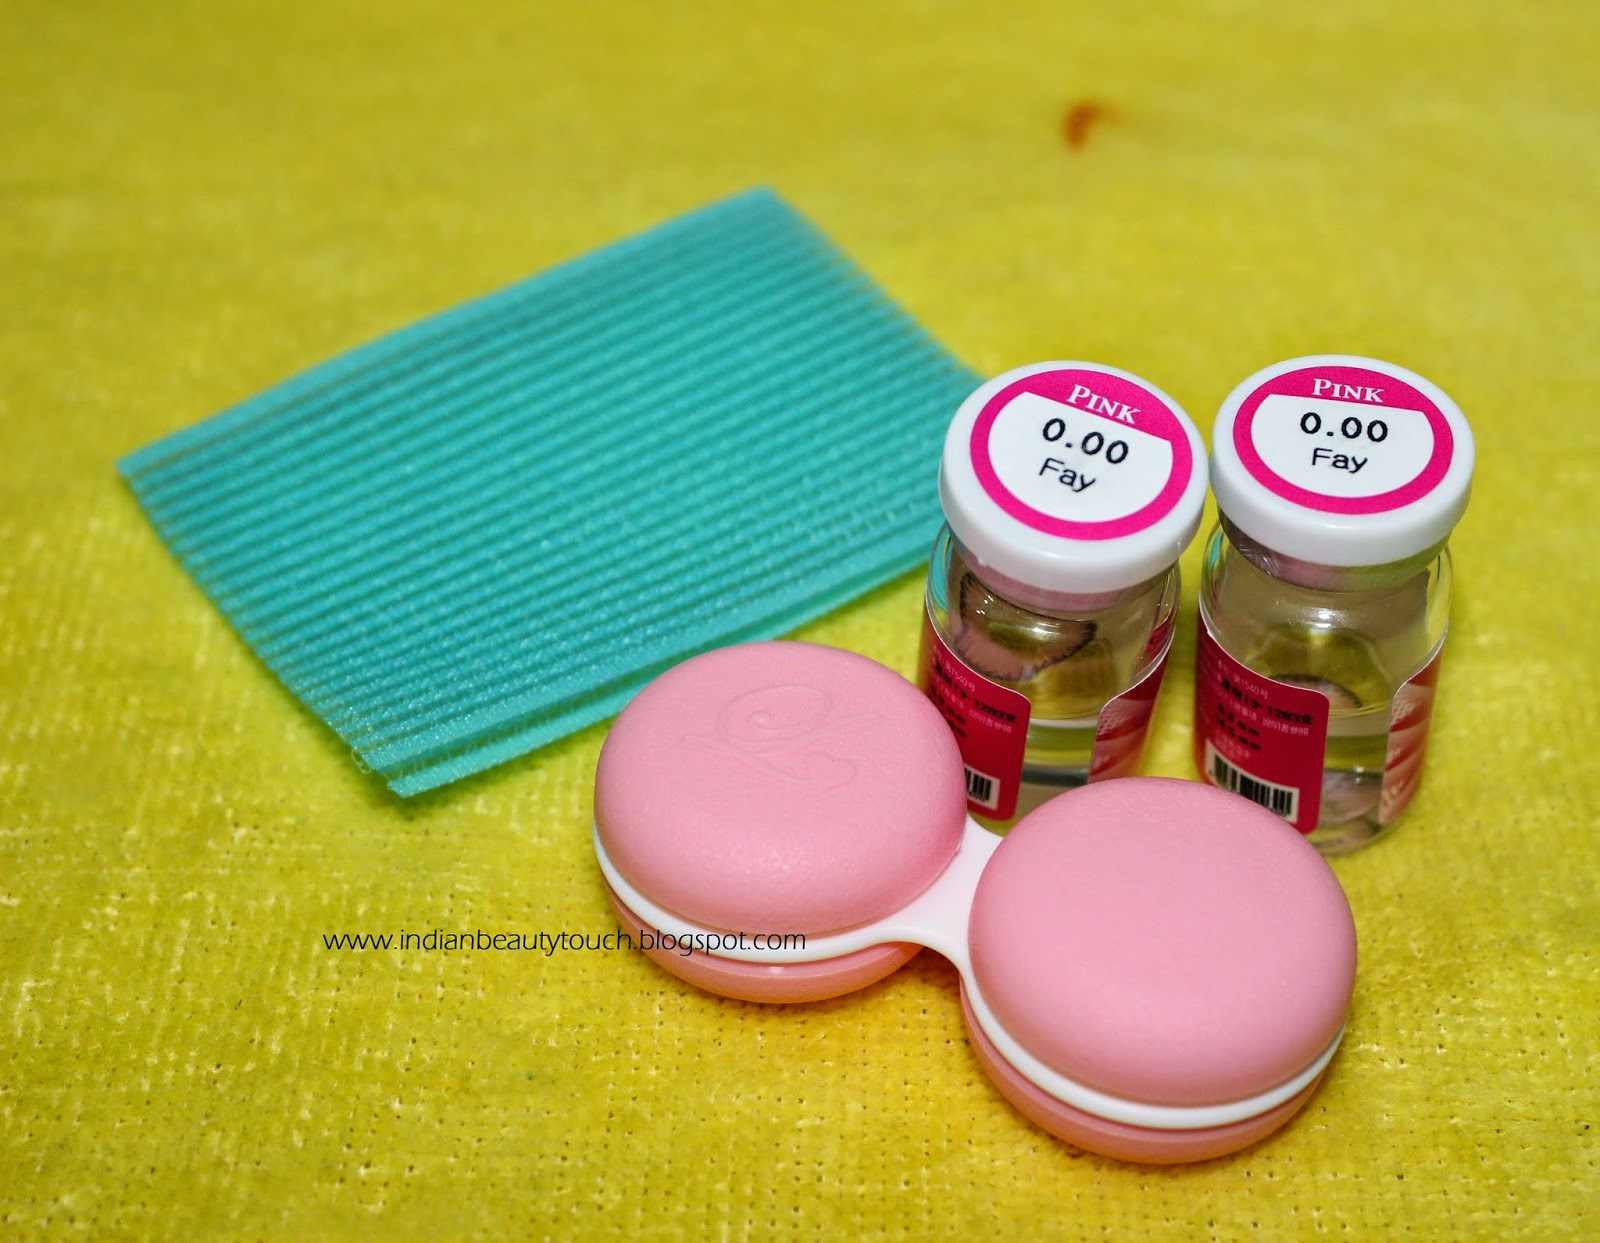 Pinky Paradise Circle lens in Eos fairy pink